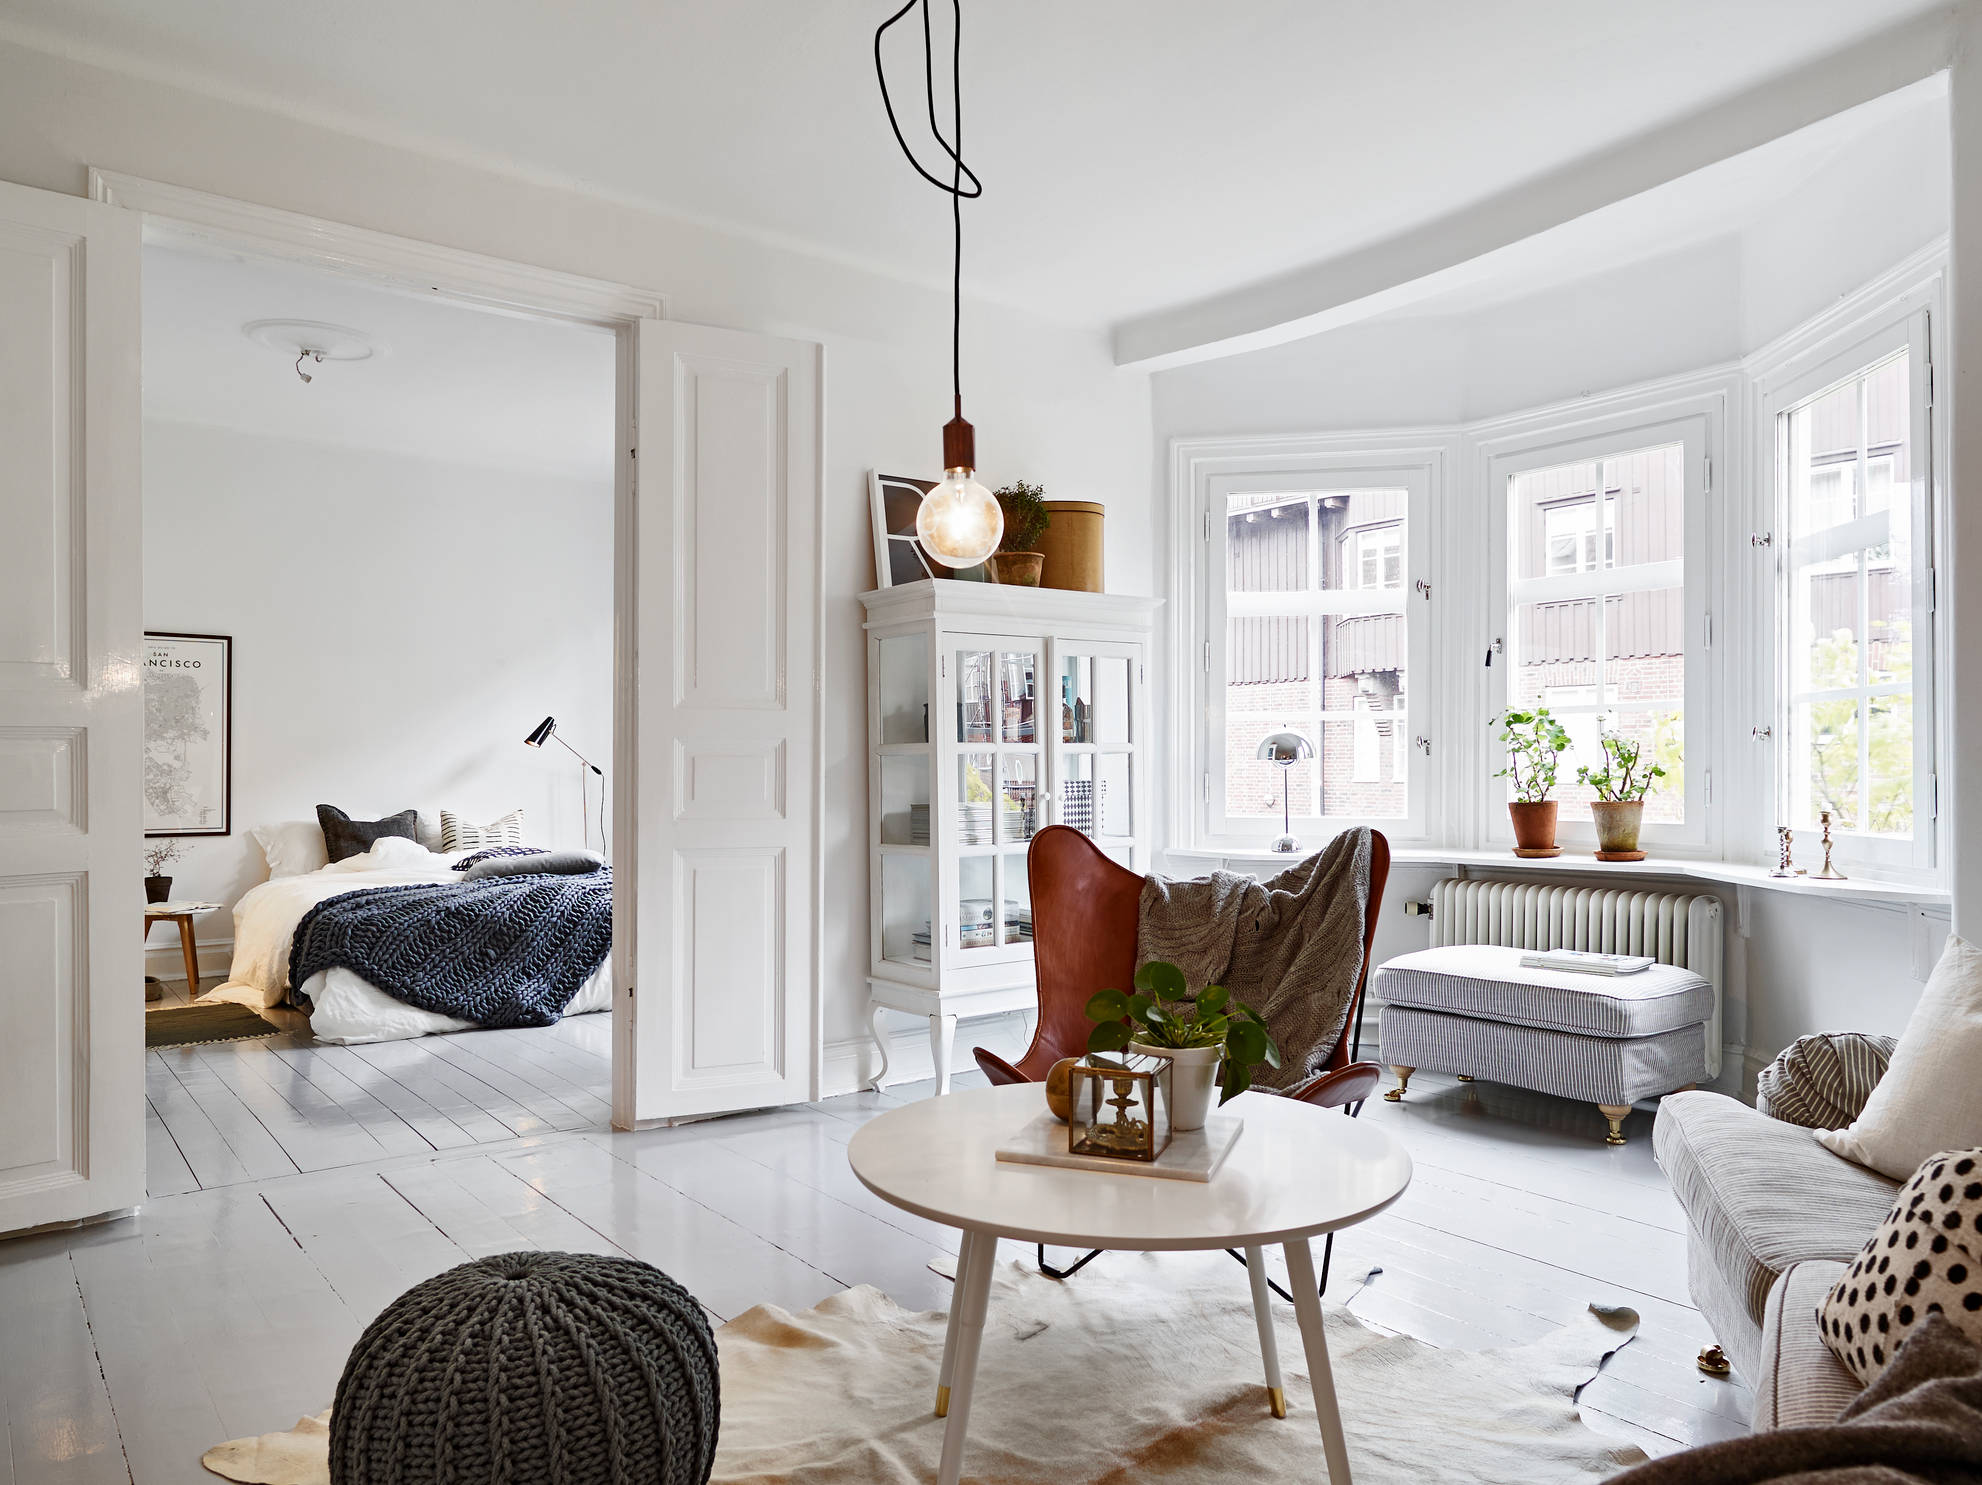 Classic and mid century modern combined into a cozy swedish home